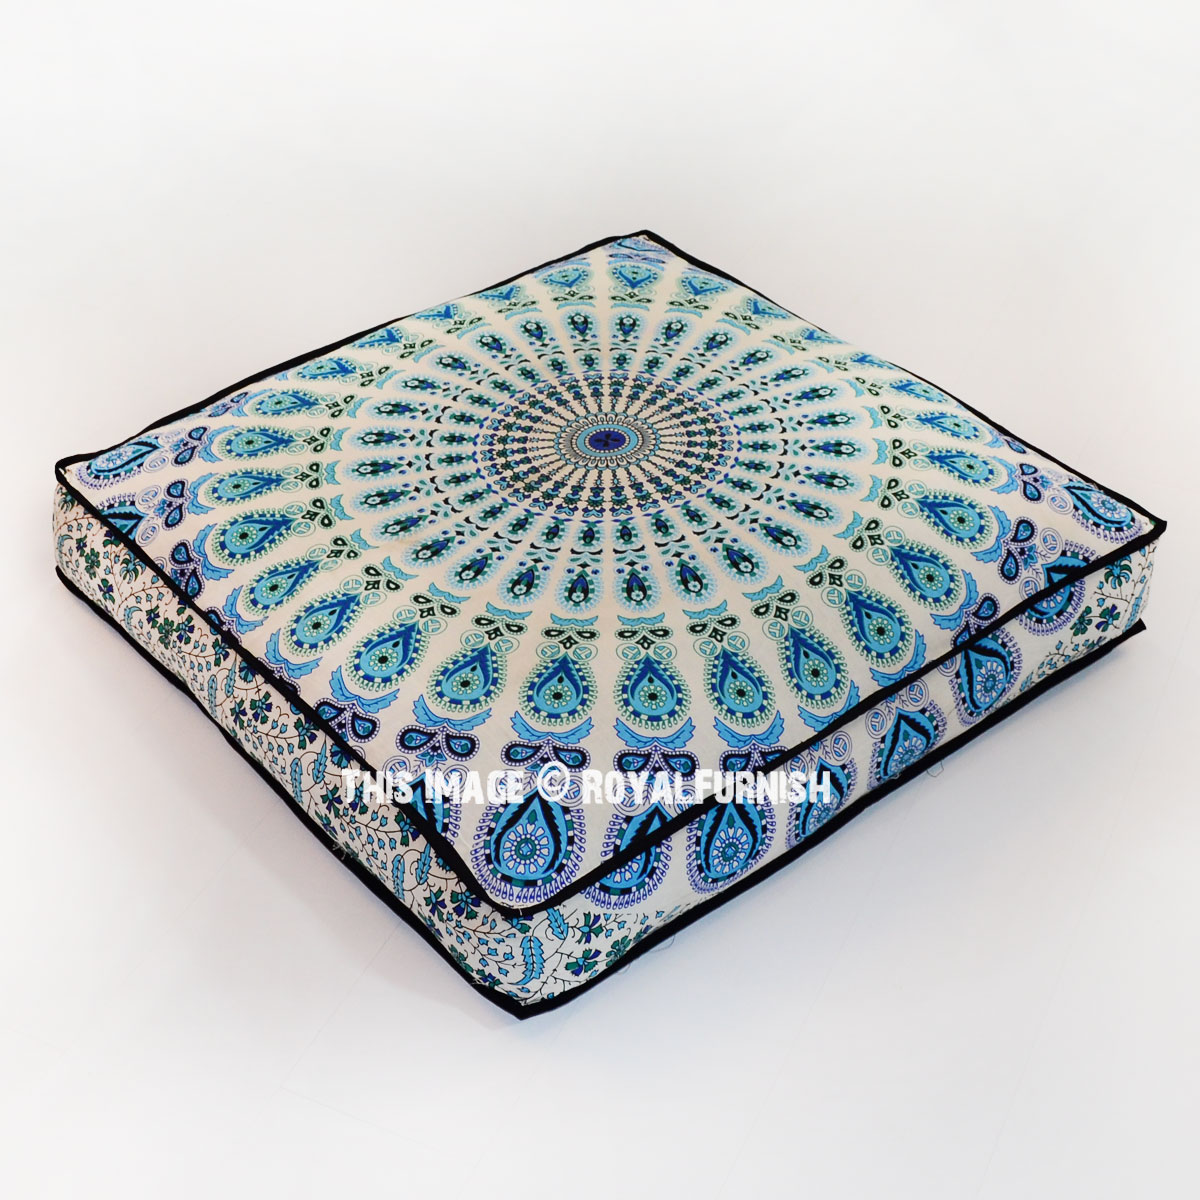 Floor Pillow Covers 25x25 : White & Blue Mandala Square Floor Pillow Cover 36